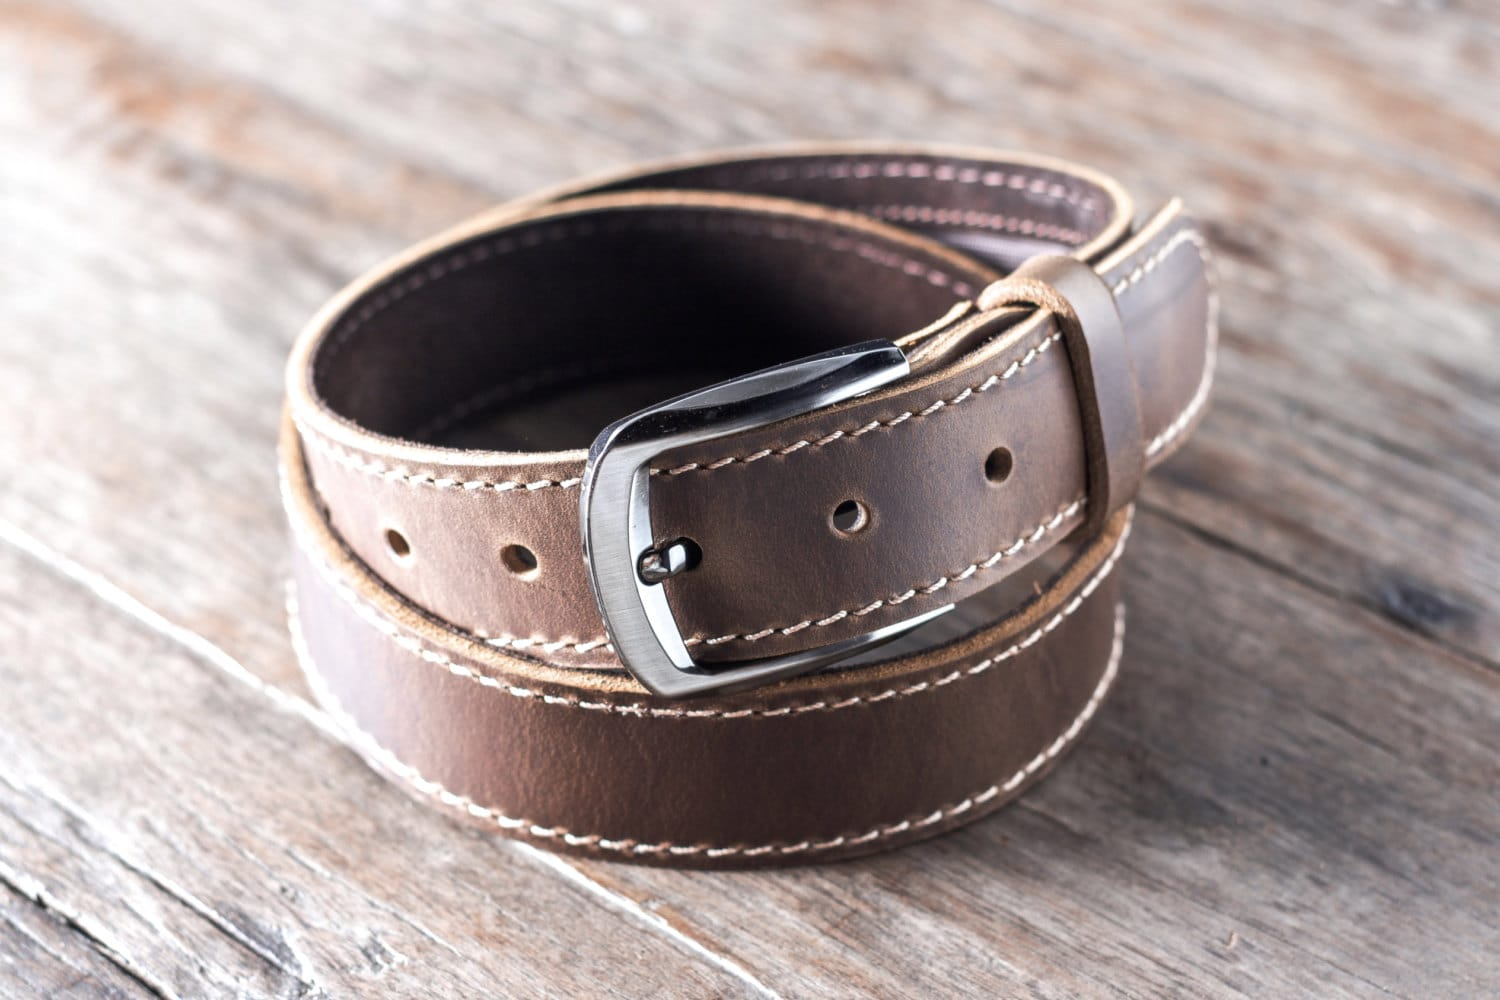 Hair-on leather belt with silver conchos for the rodeo. A stretchy cloth outdoors belt for a trek through the woods. Belts are made in a wide variety of styles for a wide variety of occasions, and with Hatcountry's men's belts, you can have a belt for each one.